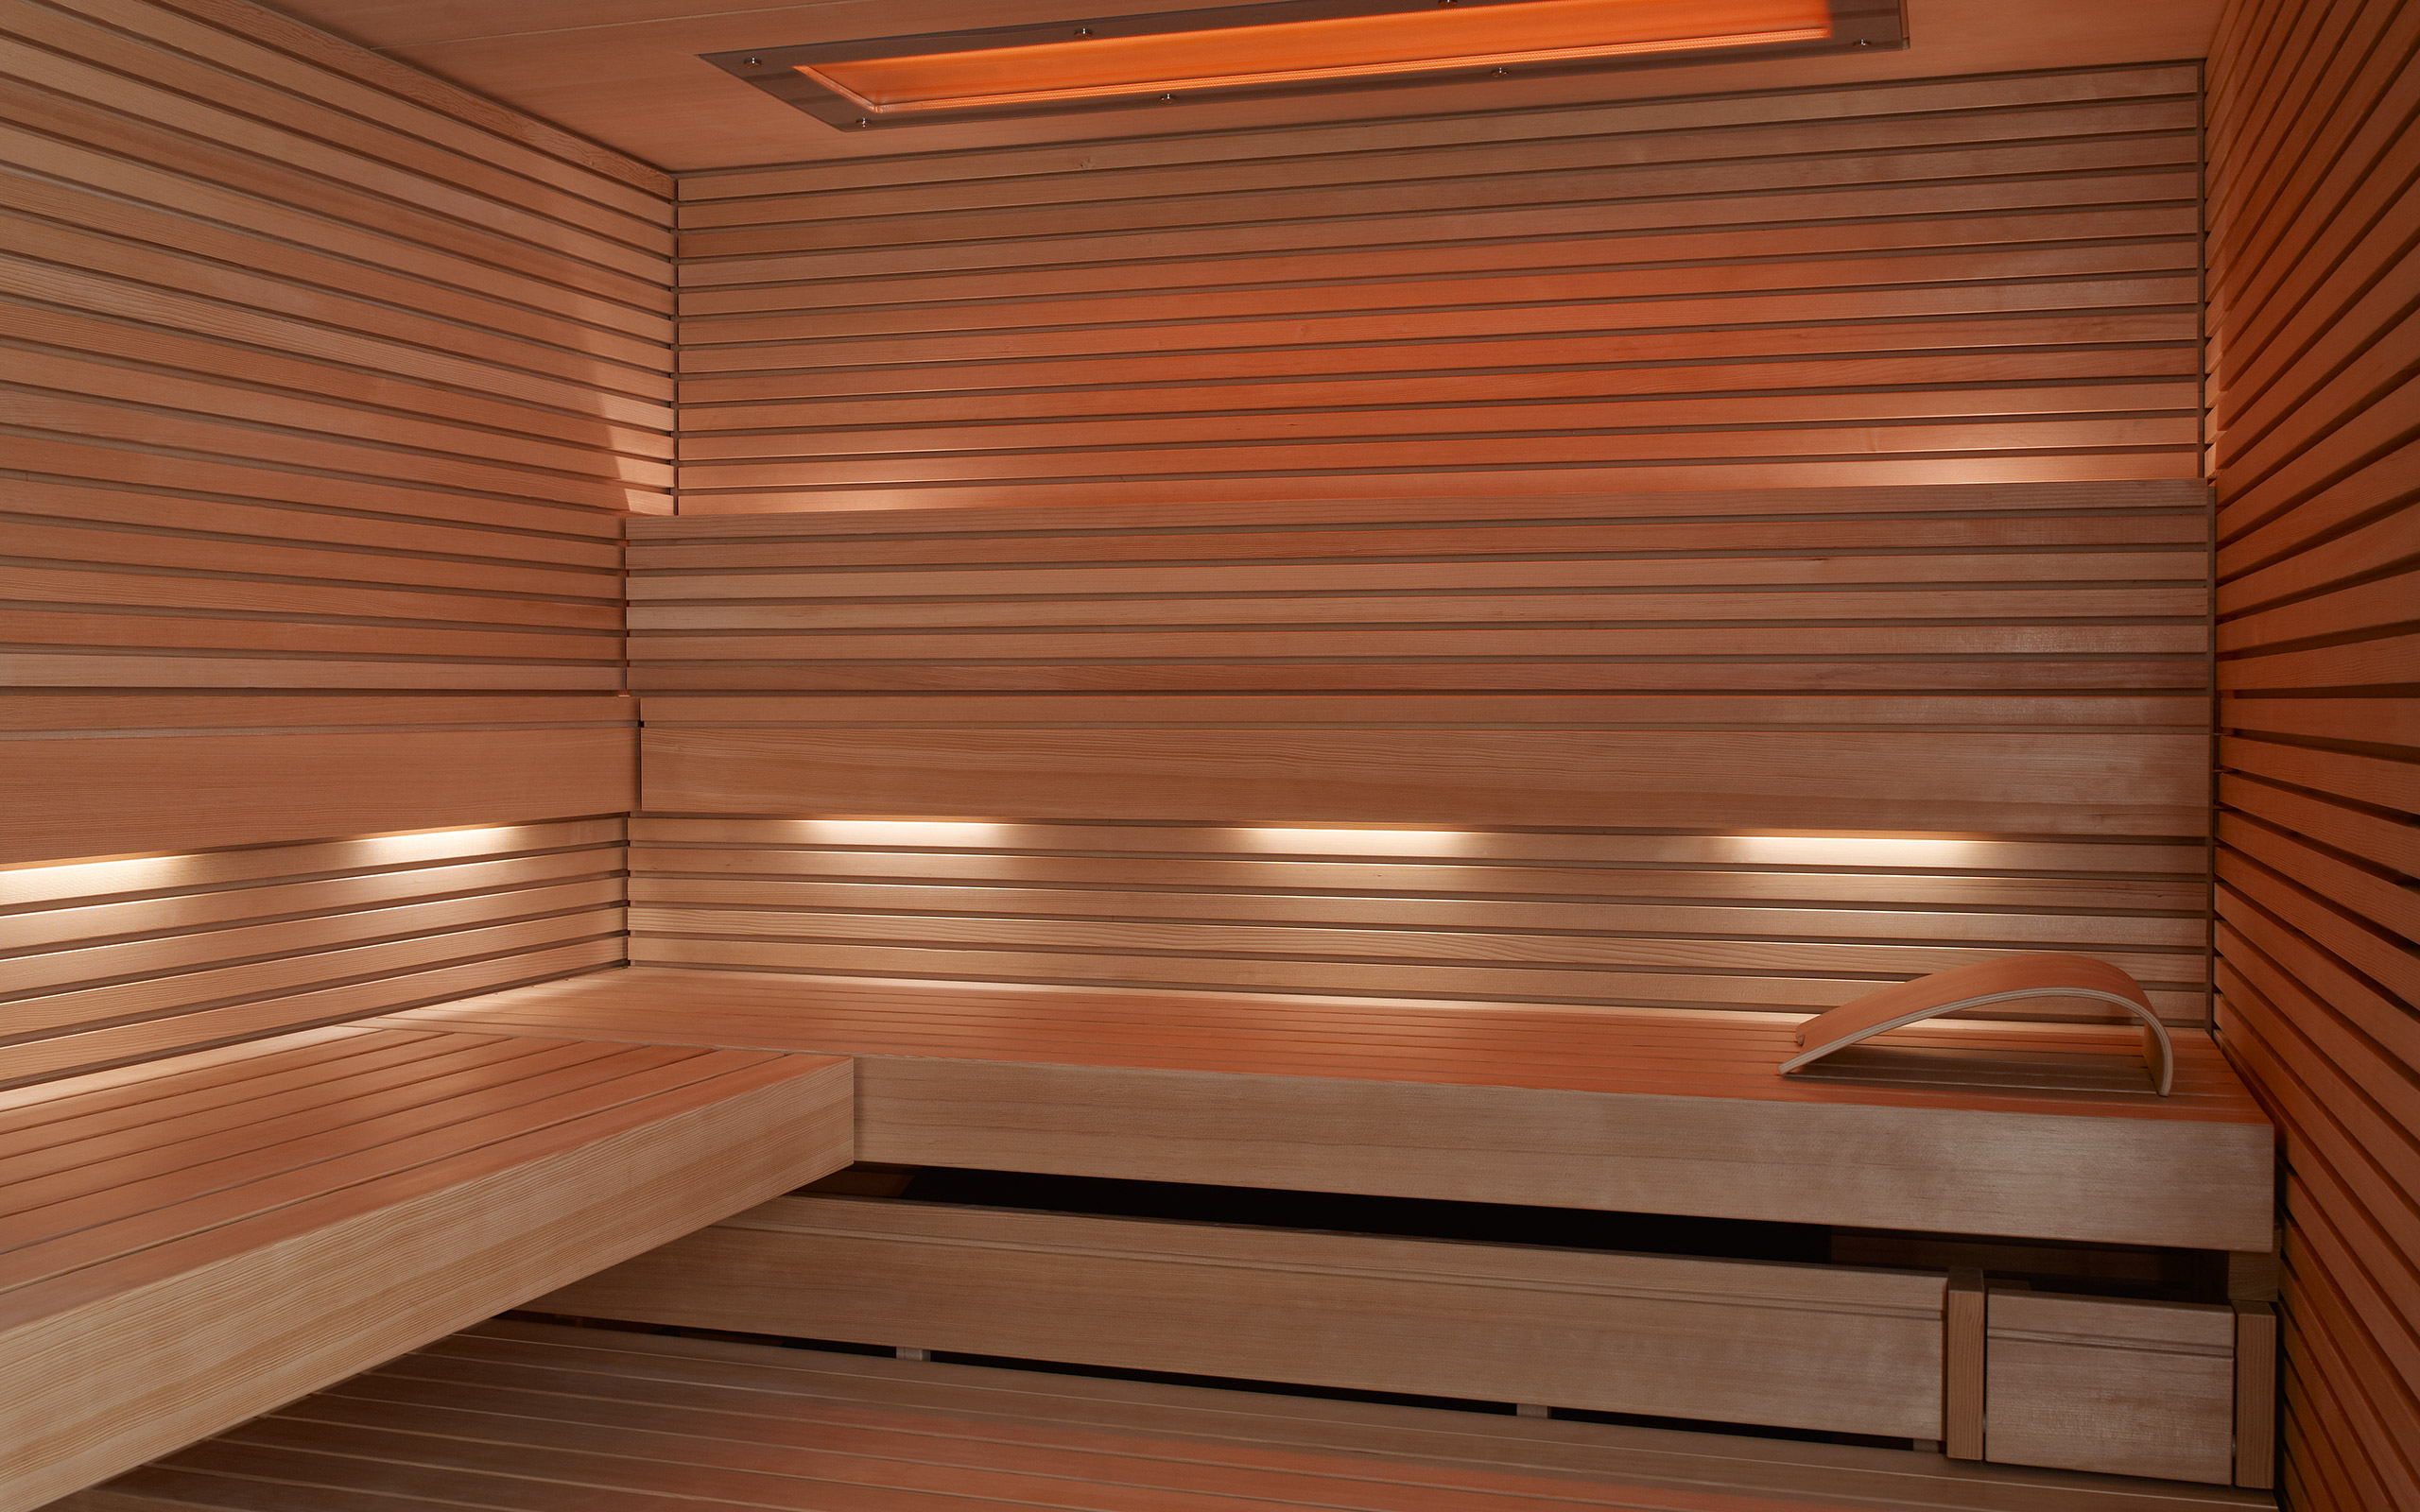 klafs sauna pure die schlichte elegante sauna. Black Bedroom Furniture Sets. Home Design Ideas